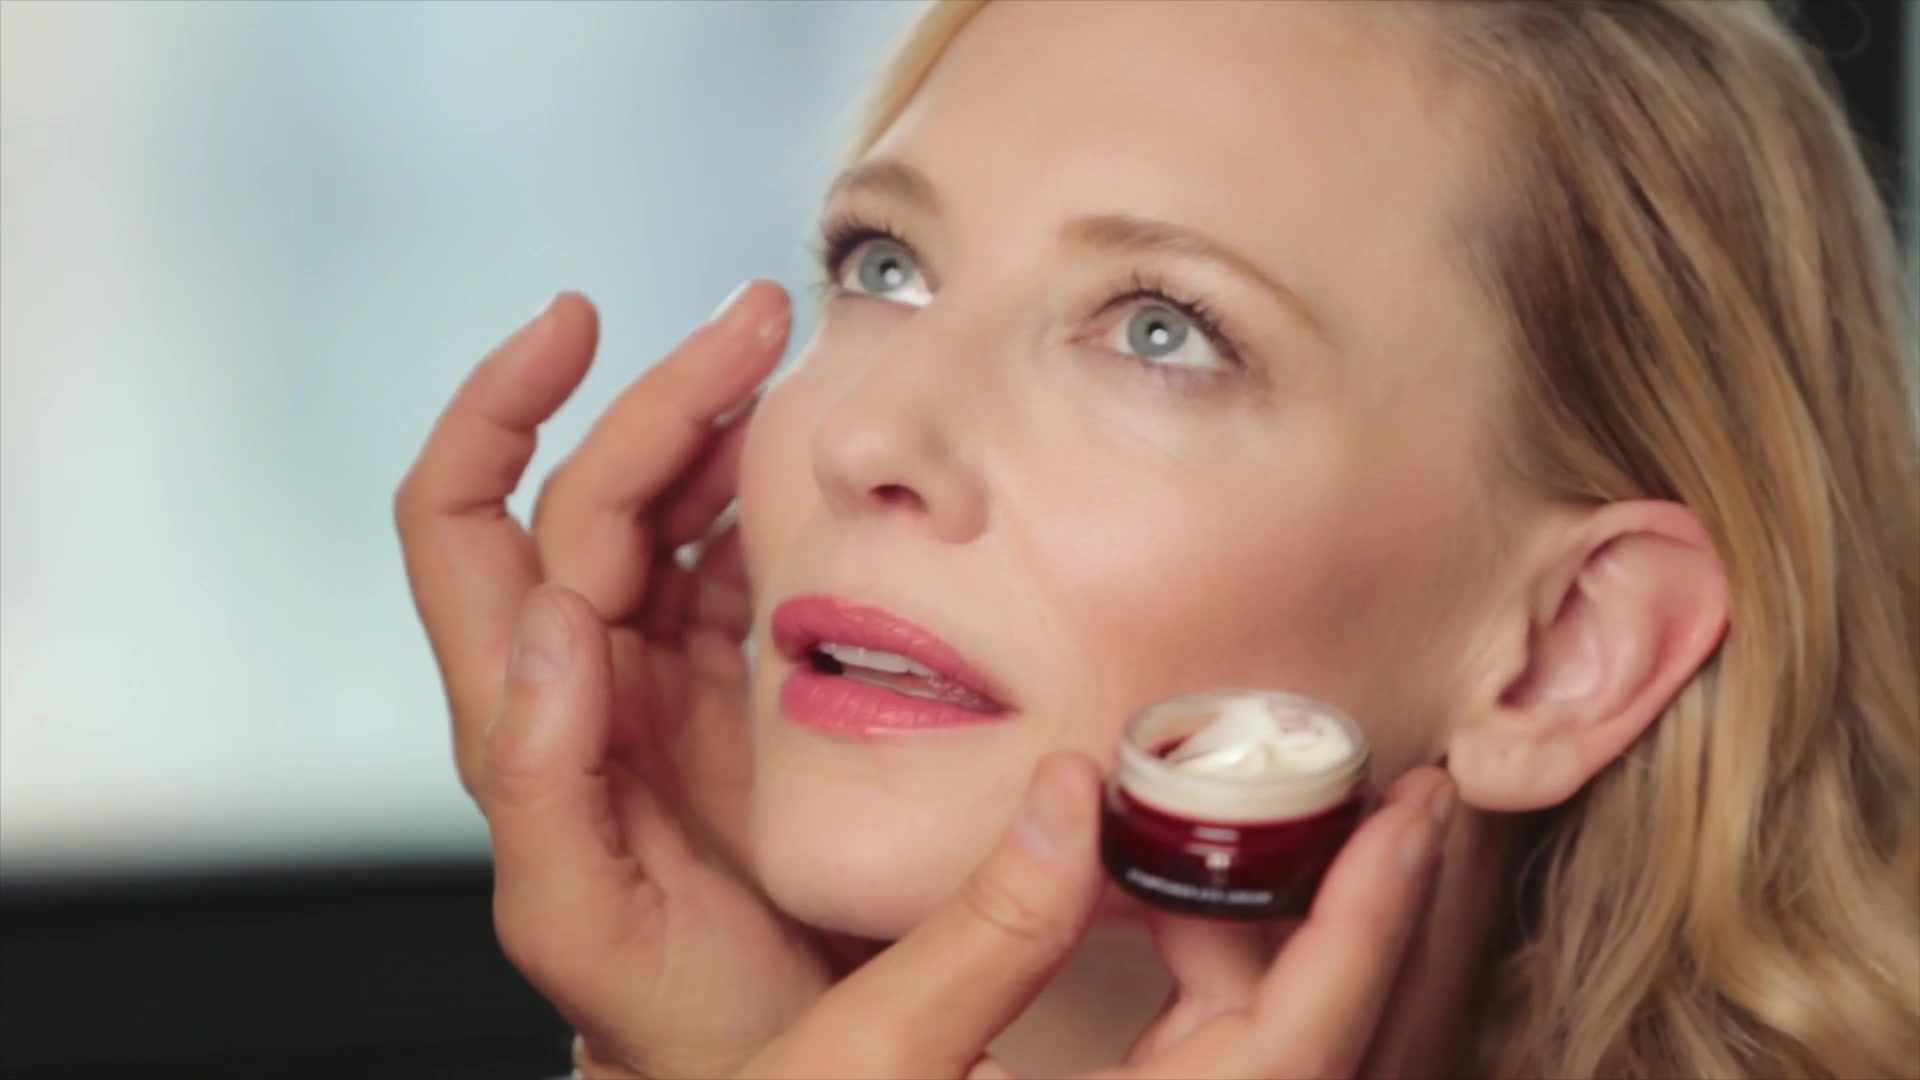 [Video] Behind-the-Scenes with Cate Blanchett – SK-II